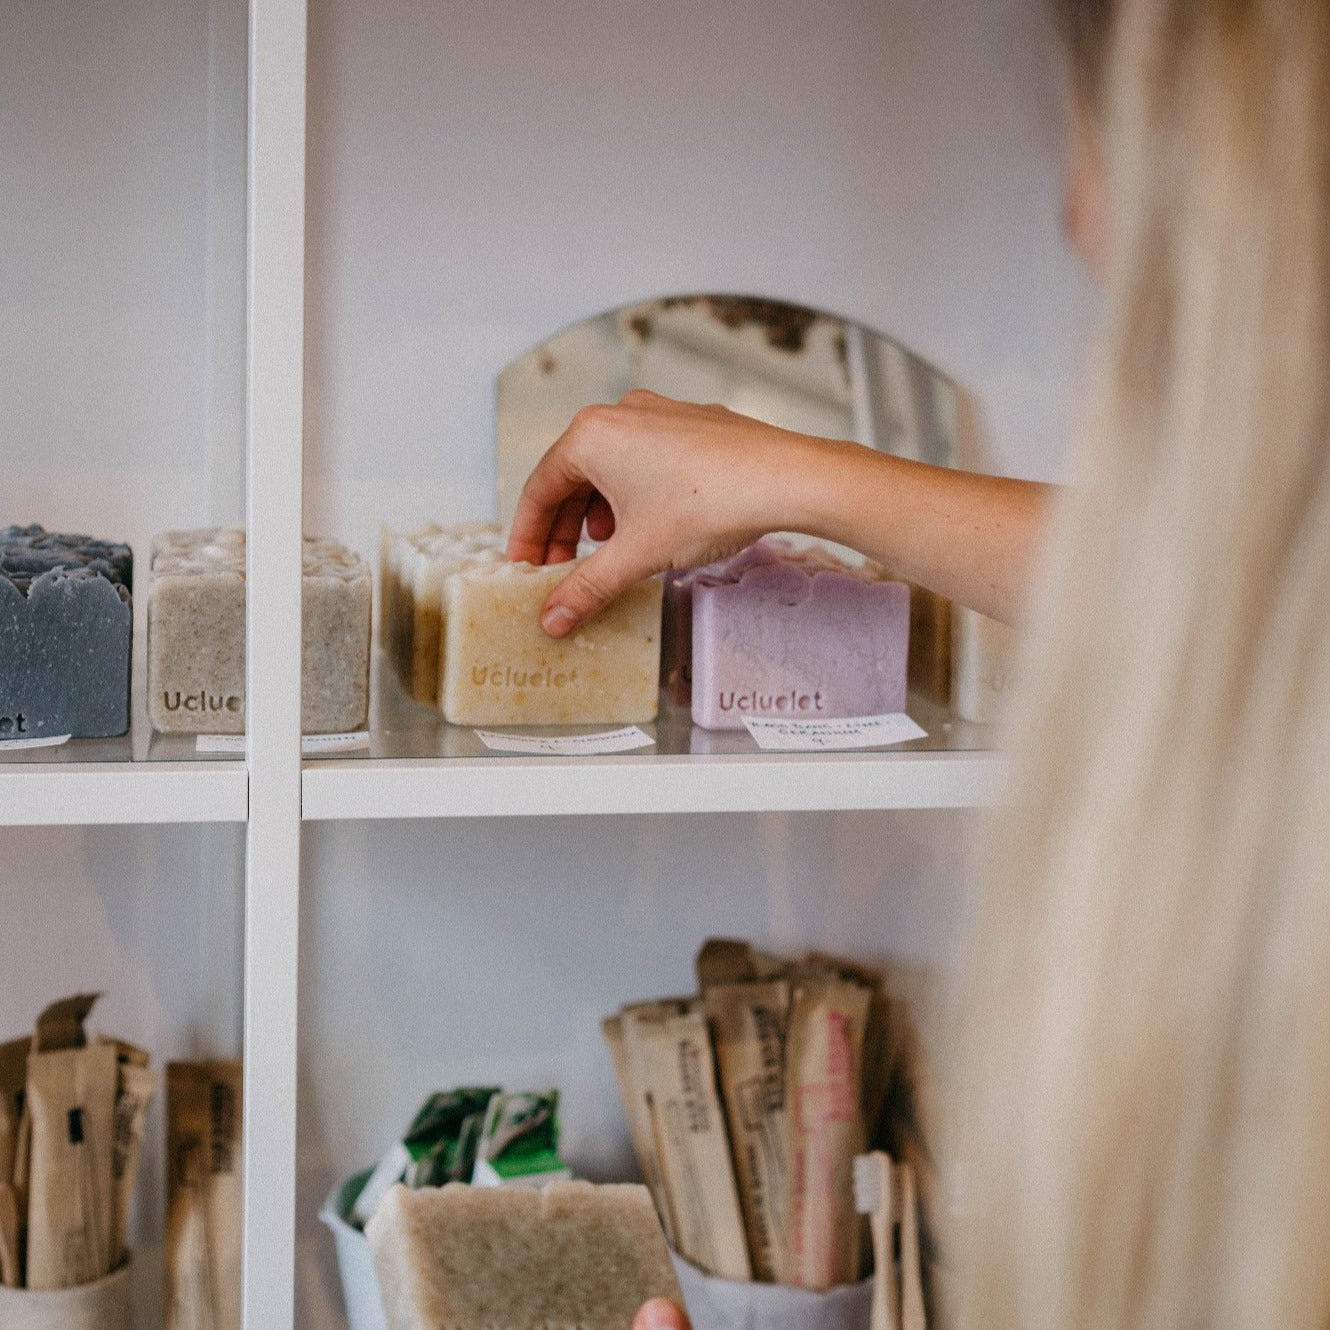 Ucluelet Soap - The Den Ucluelet